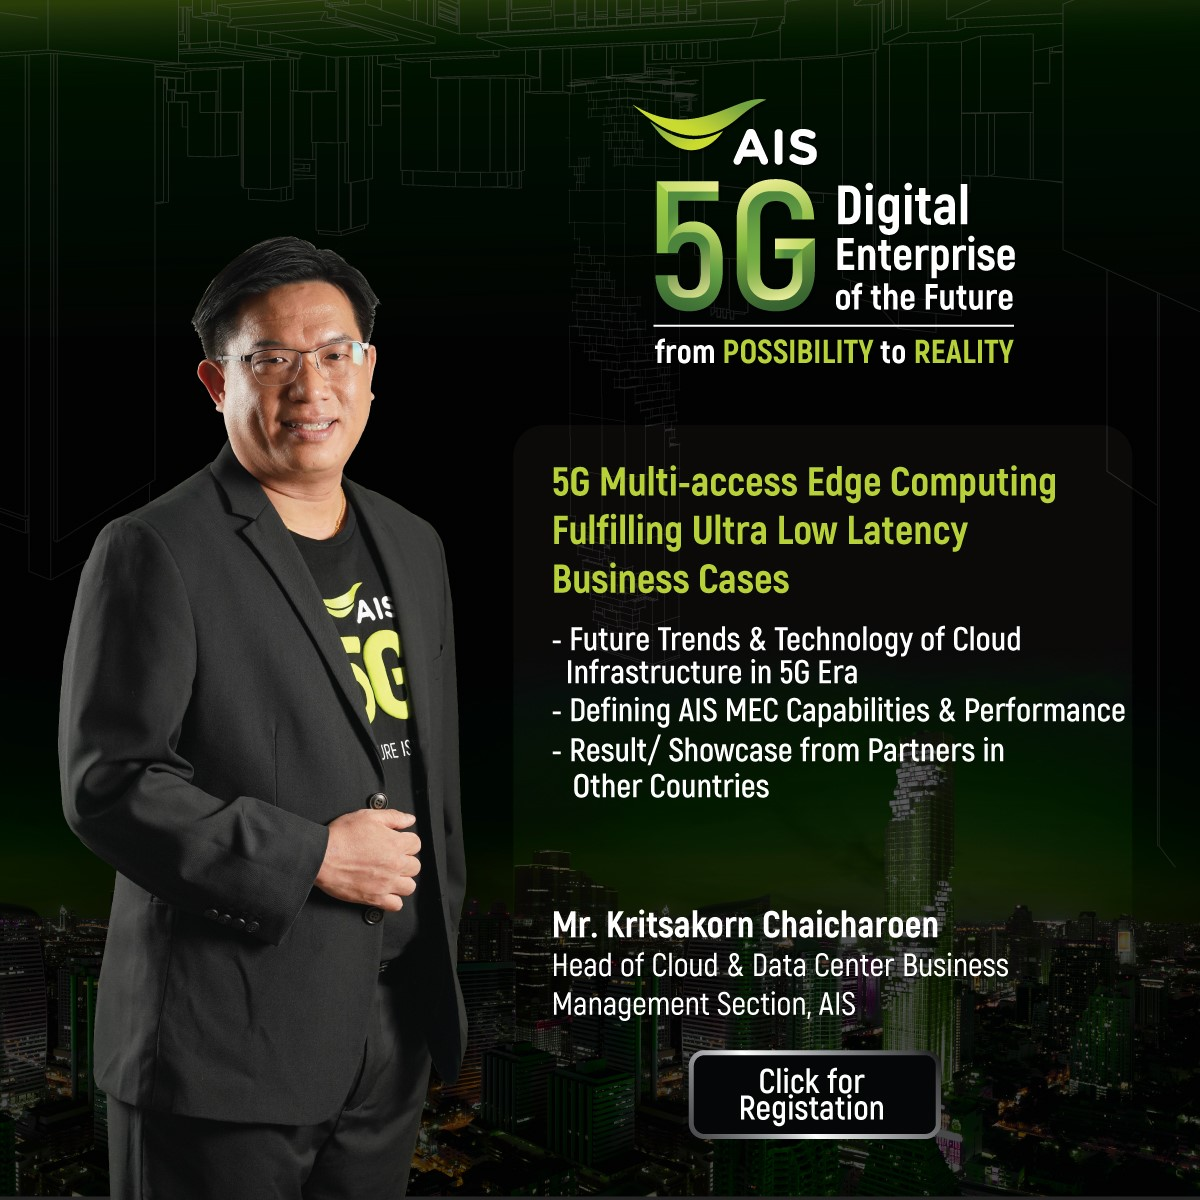 AIS 20G Digital Enterprise of the Future from possibility to ...